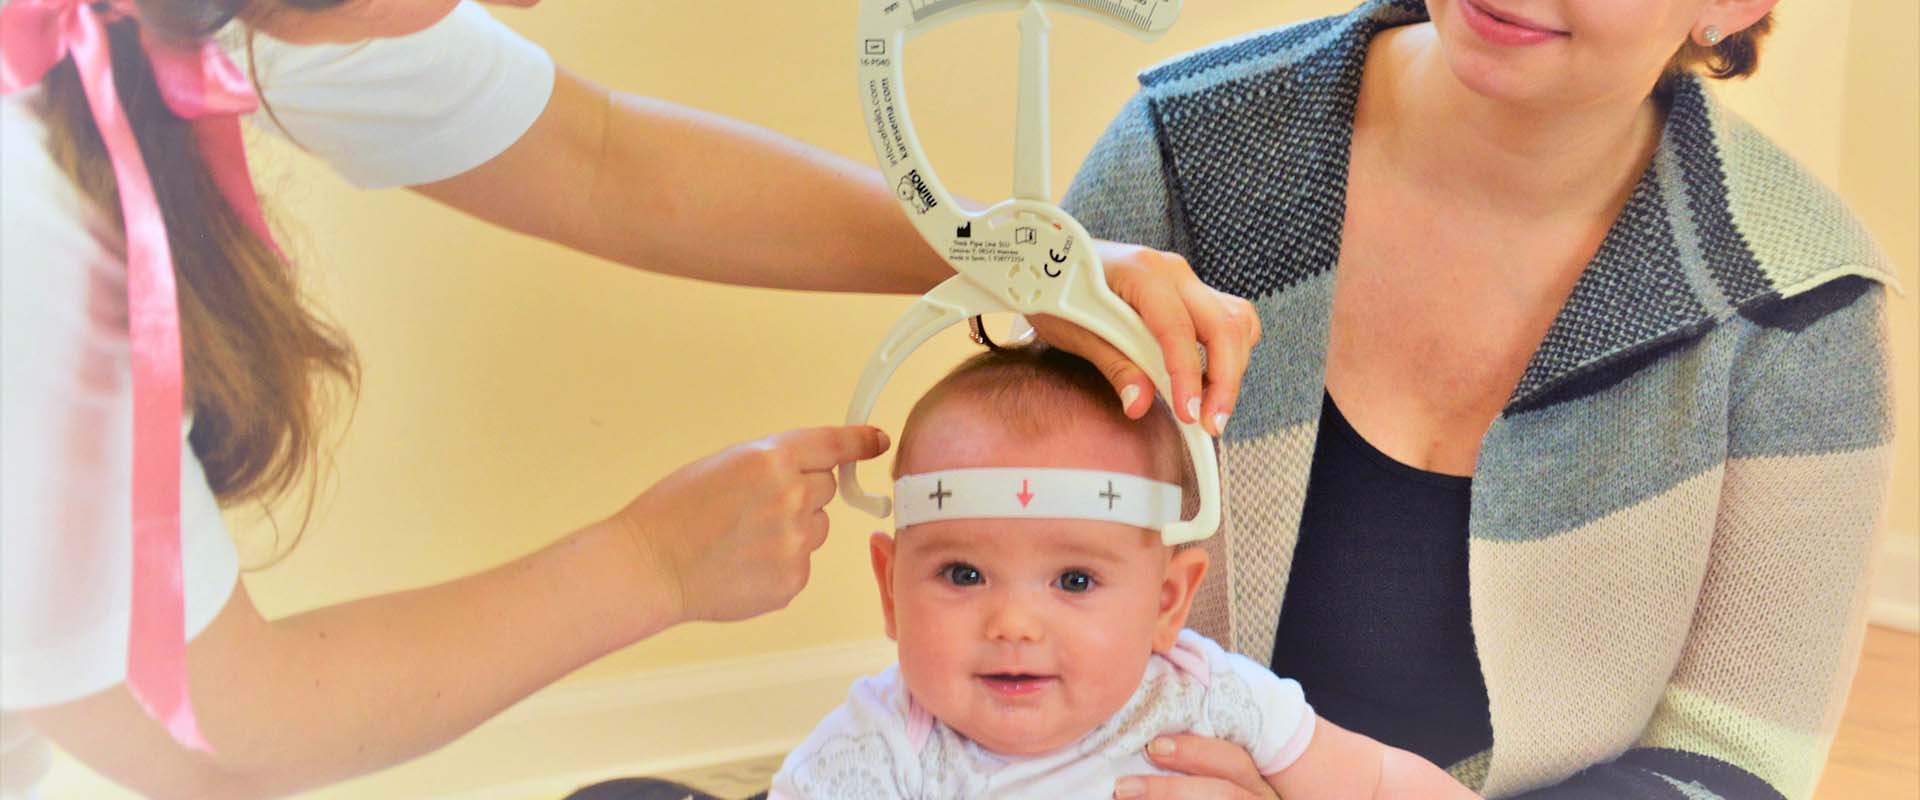 Pediatric Therapy for Plagiocephaly with Angella Marcotte - The Baby Movement Specialist